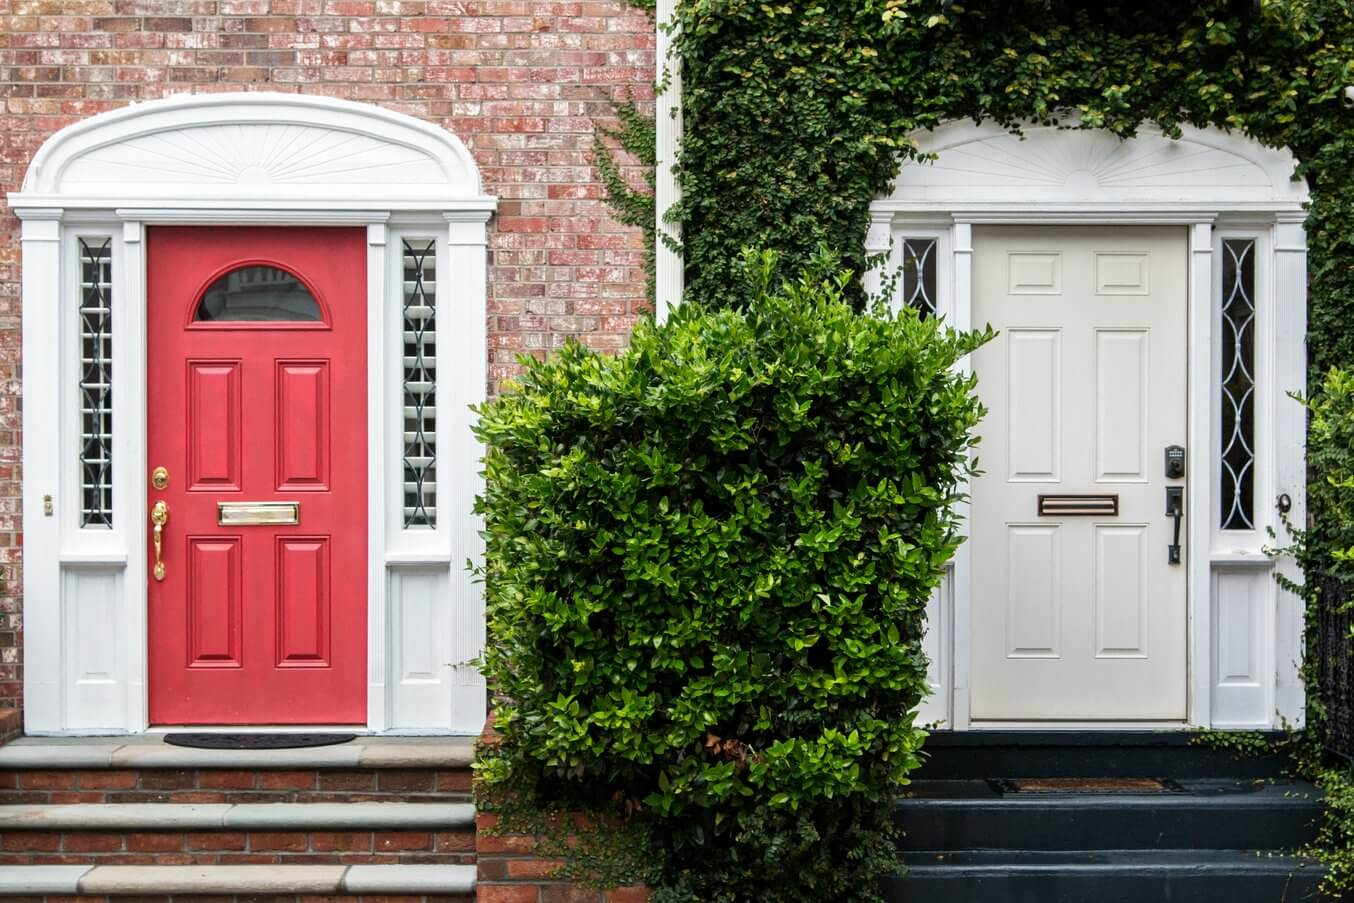 Commercial Property Leasehold Vs Freehold